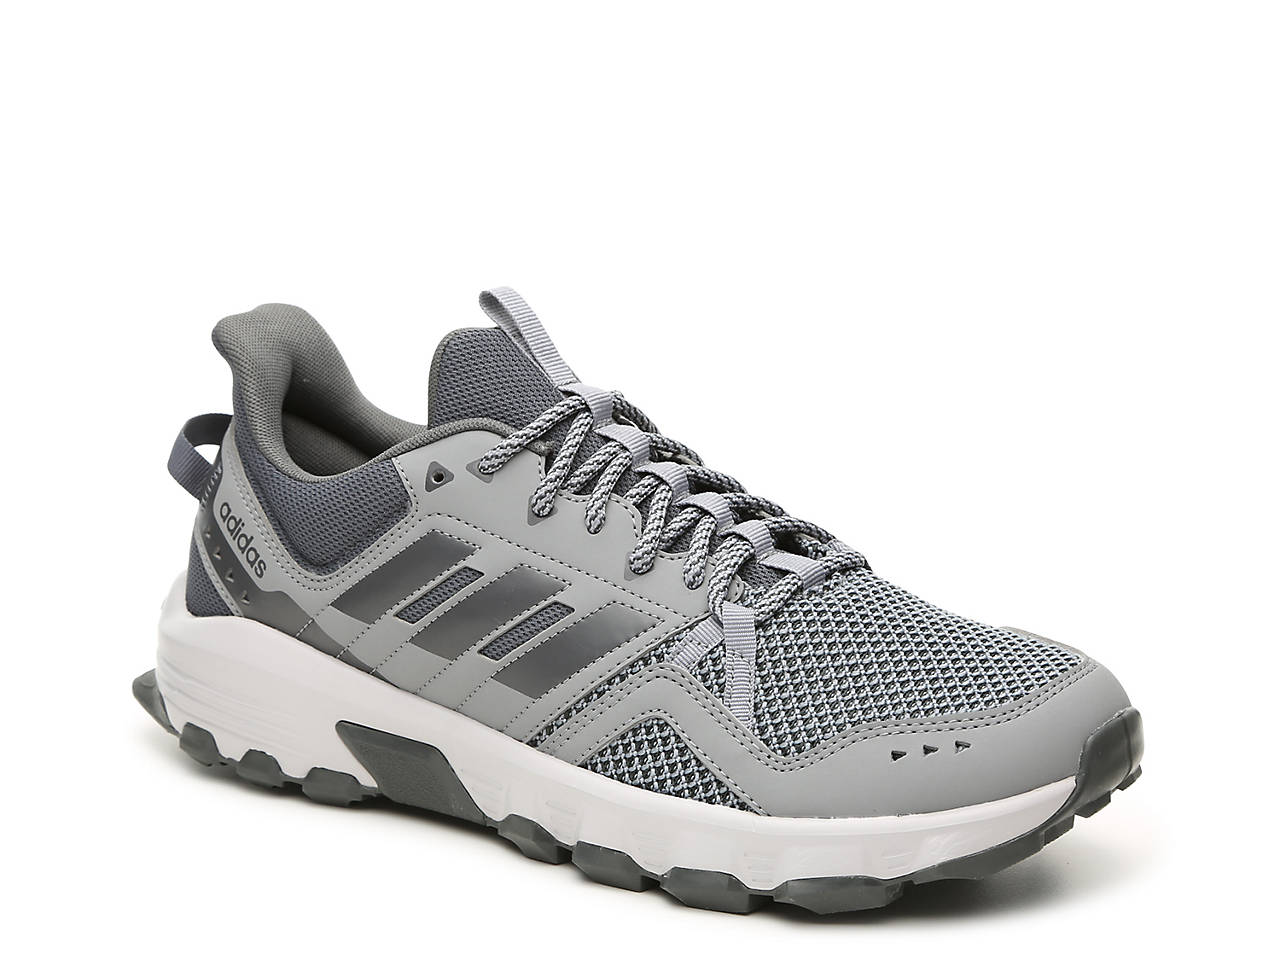 1dce6ab4fd8f21 adidas Rockadia Trail Running Shoe - Men s Men s Shoes